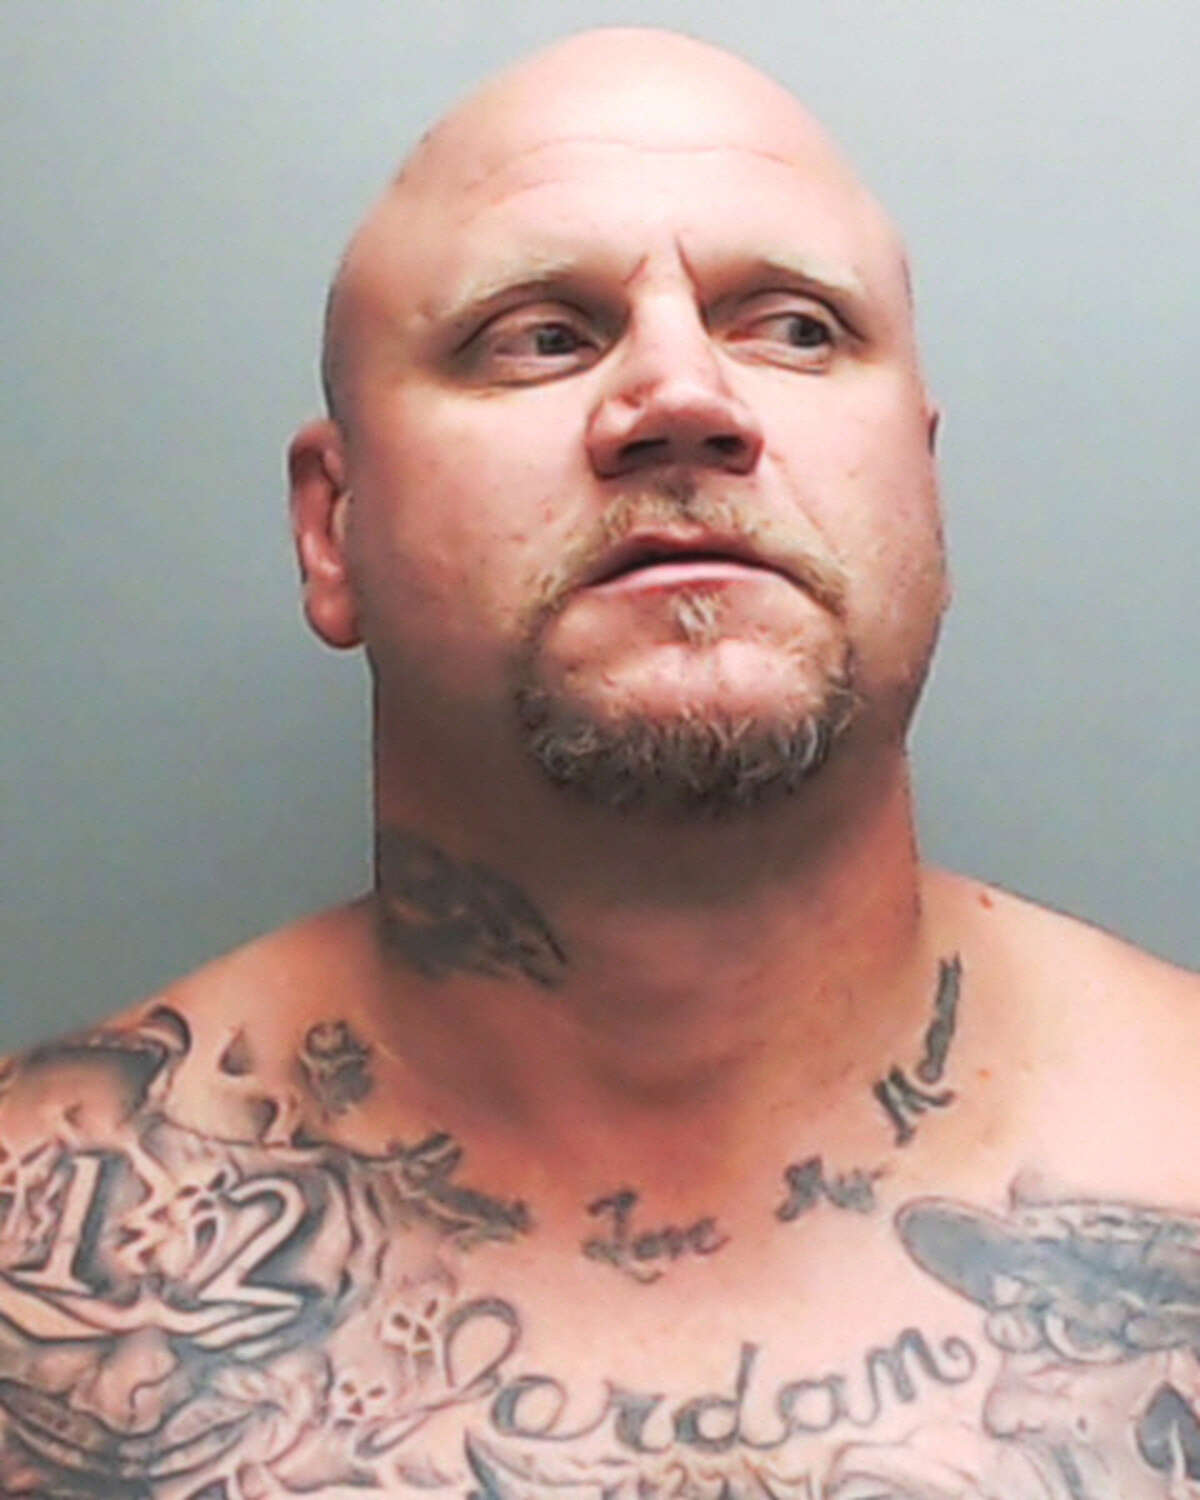 William Shawn Lawrence, 42, was indicted for theft of property, engaging in organized criminal activity and fraudulent used or possession of identifying information.